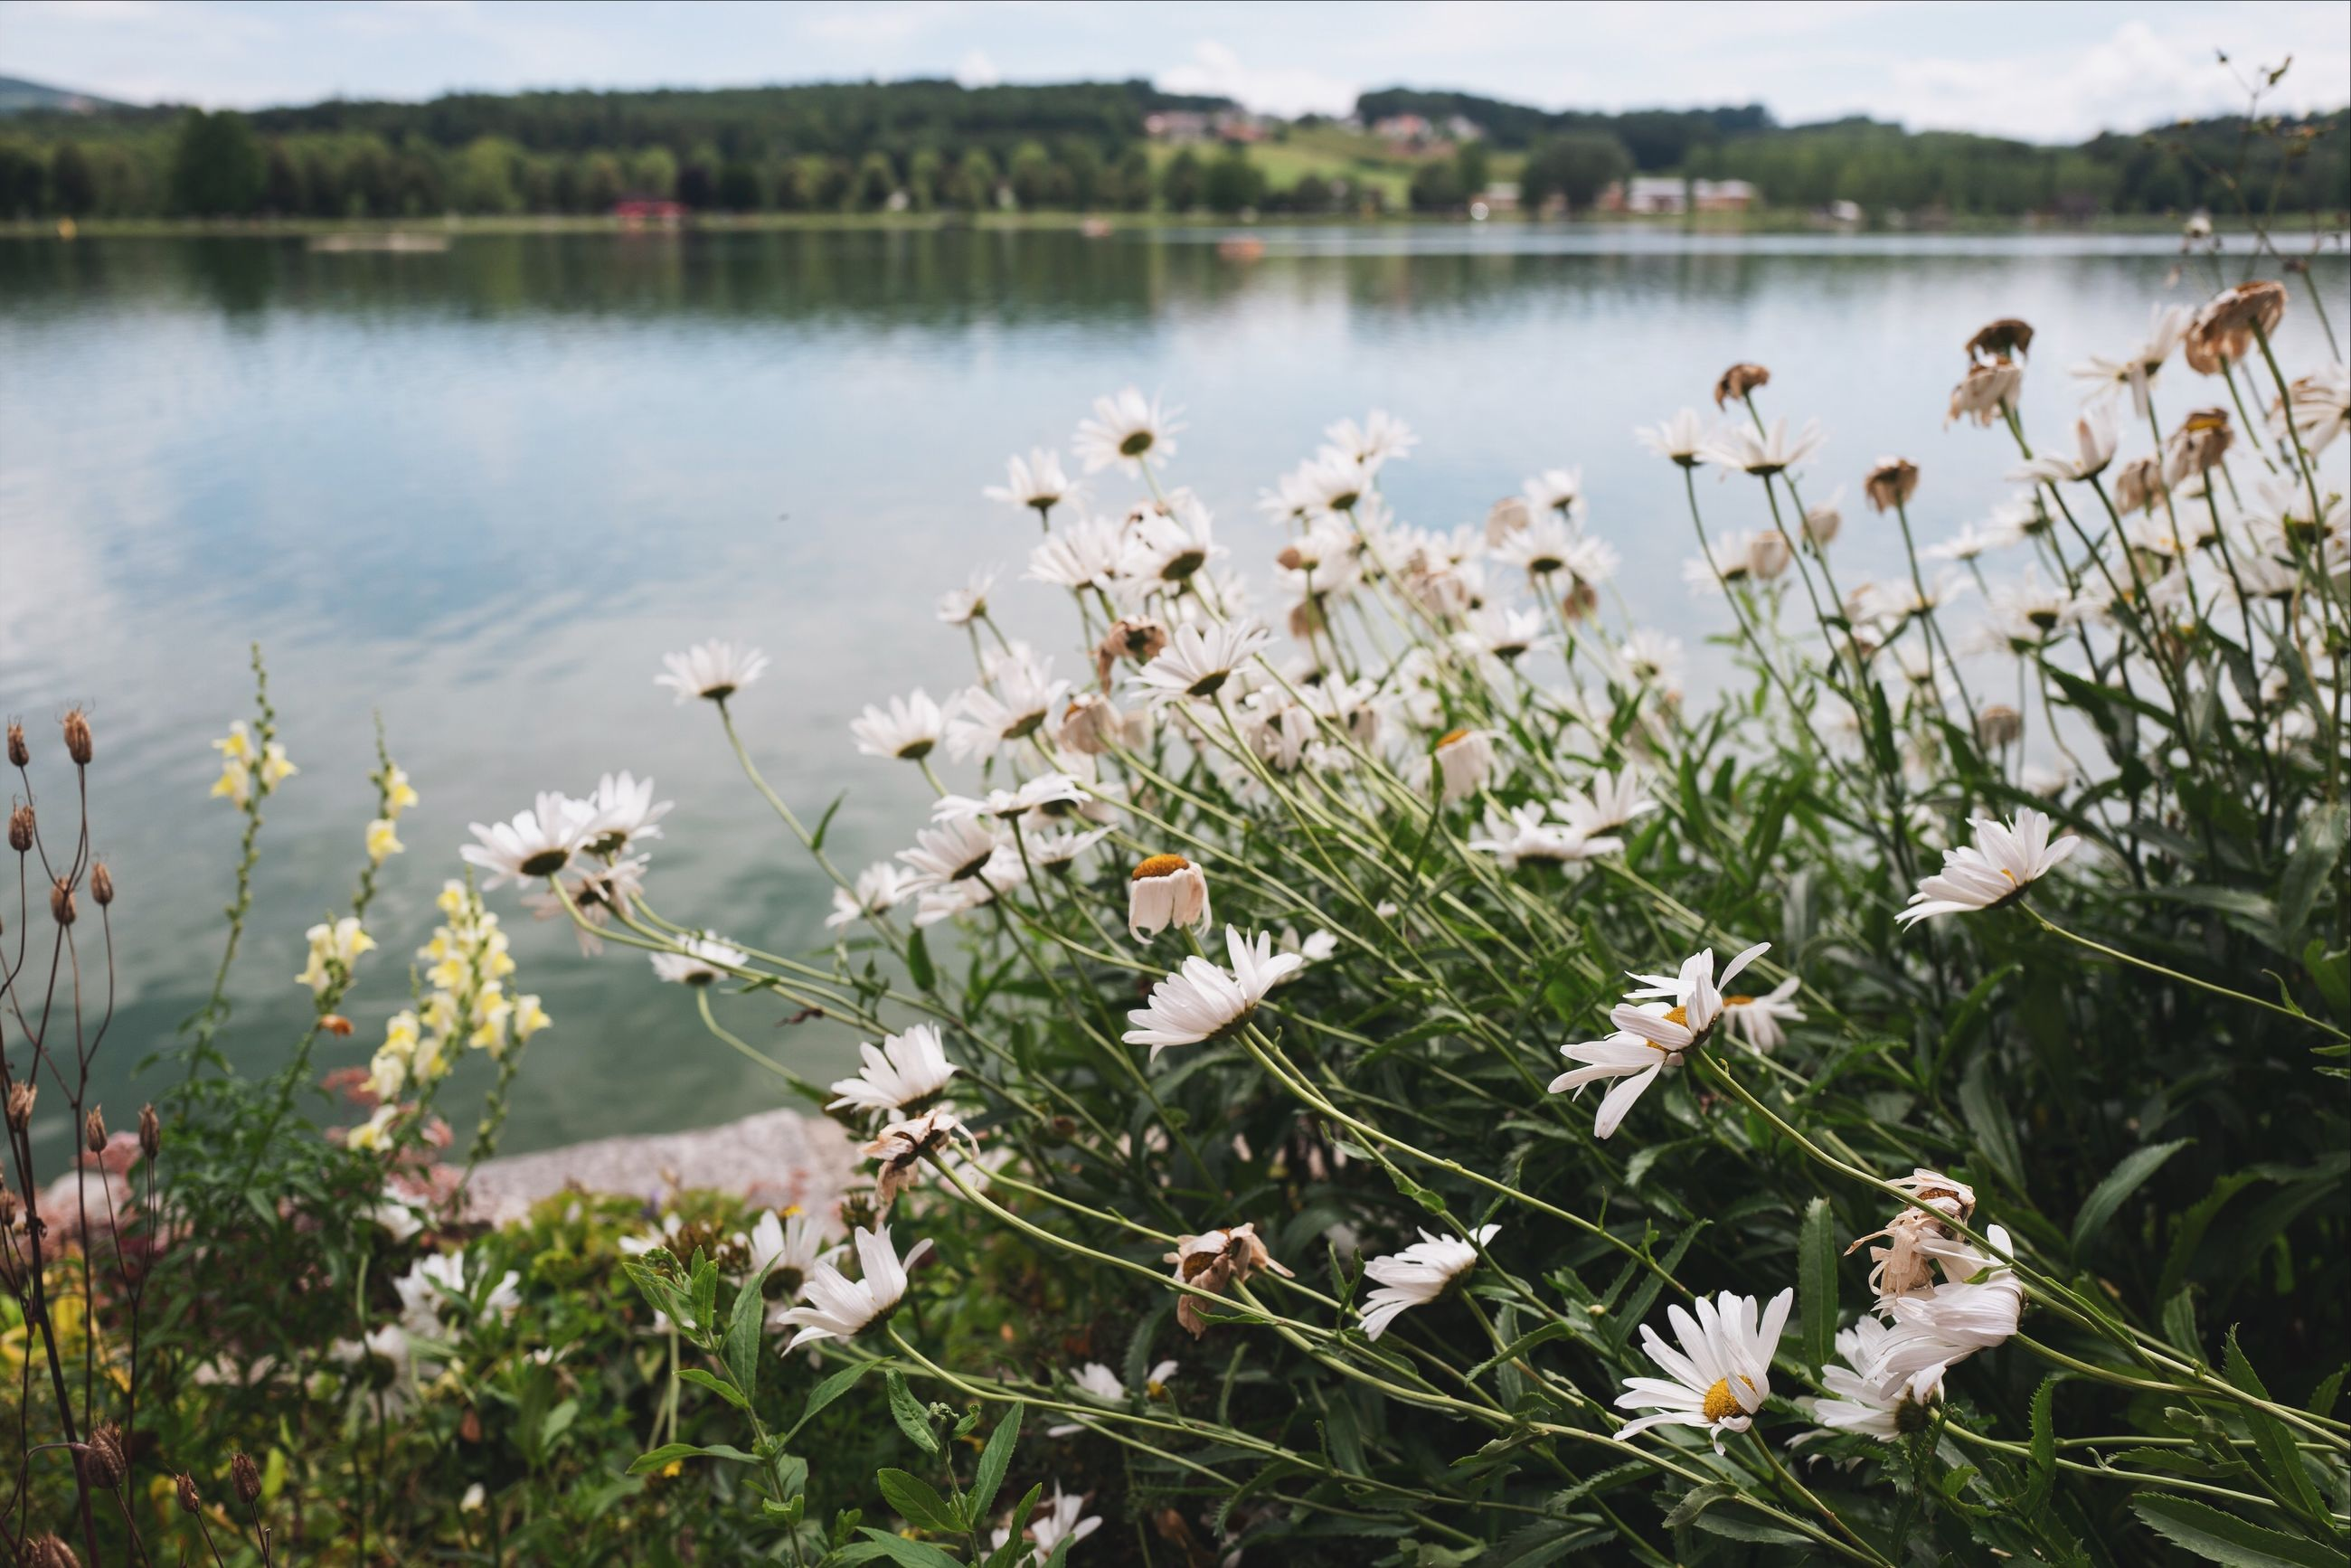 flower, plant, flowering plant, fragility, beauty in nature, vulnerability, growth, freshness, nature, day, focus on foreground, close-up, tranquility, no people, water, white color, lake, land, petal, outdoors, flower head